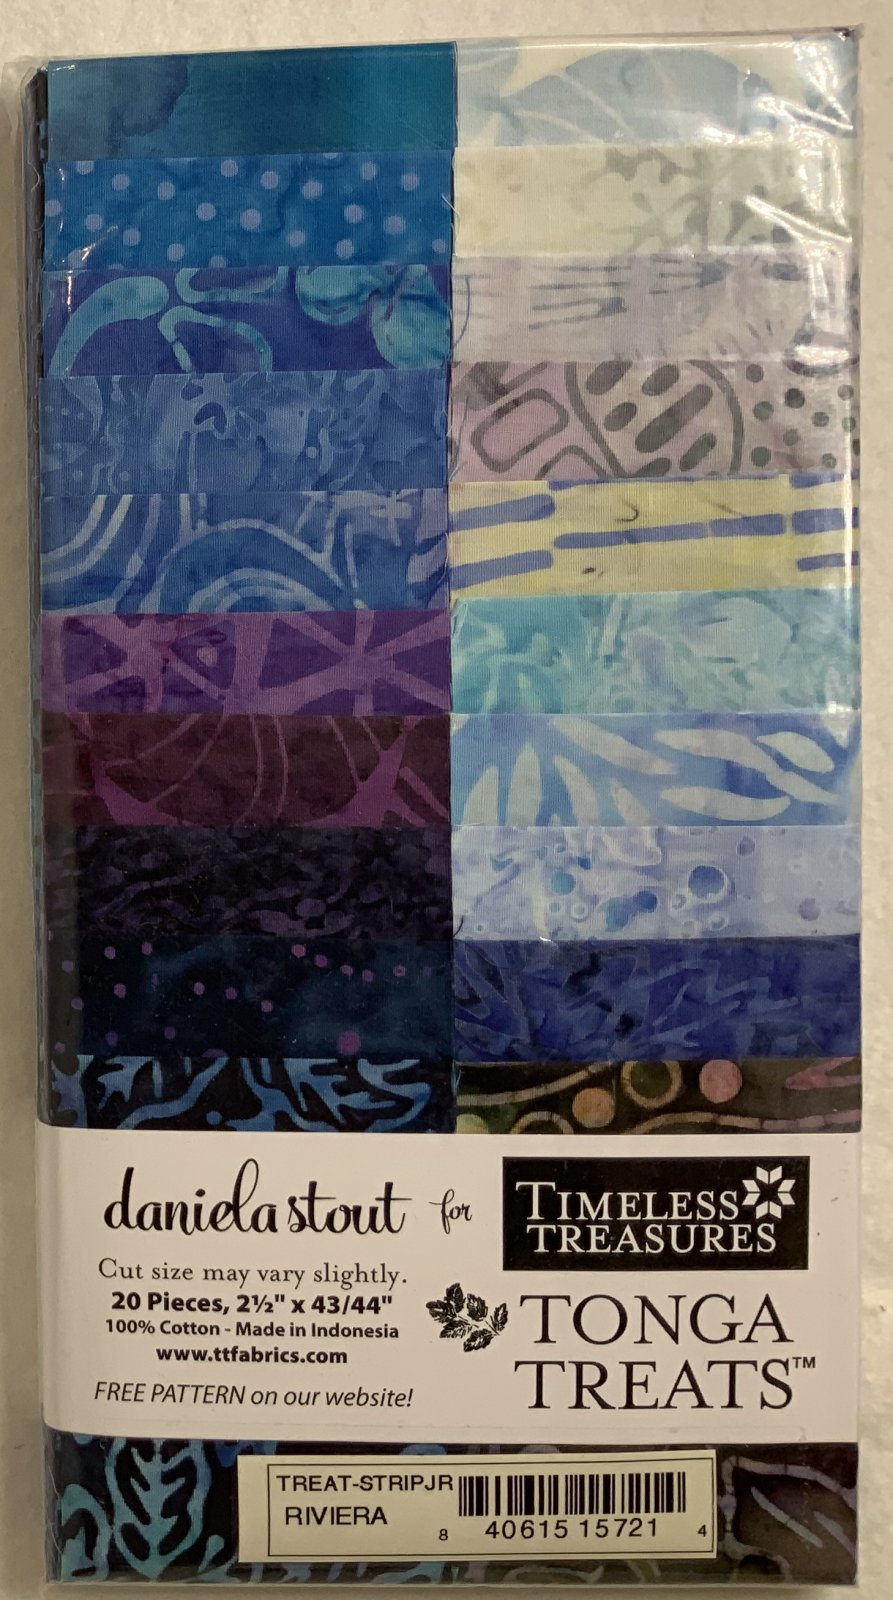 Tonga Treat Strip JR Riviera, (20 pcs 2.5 x44) - Daniela Stout - Timeless Treasures